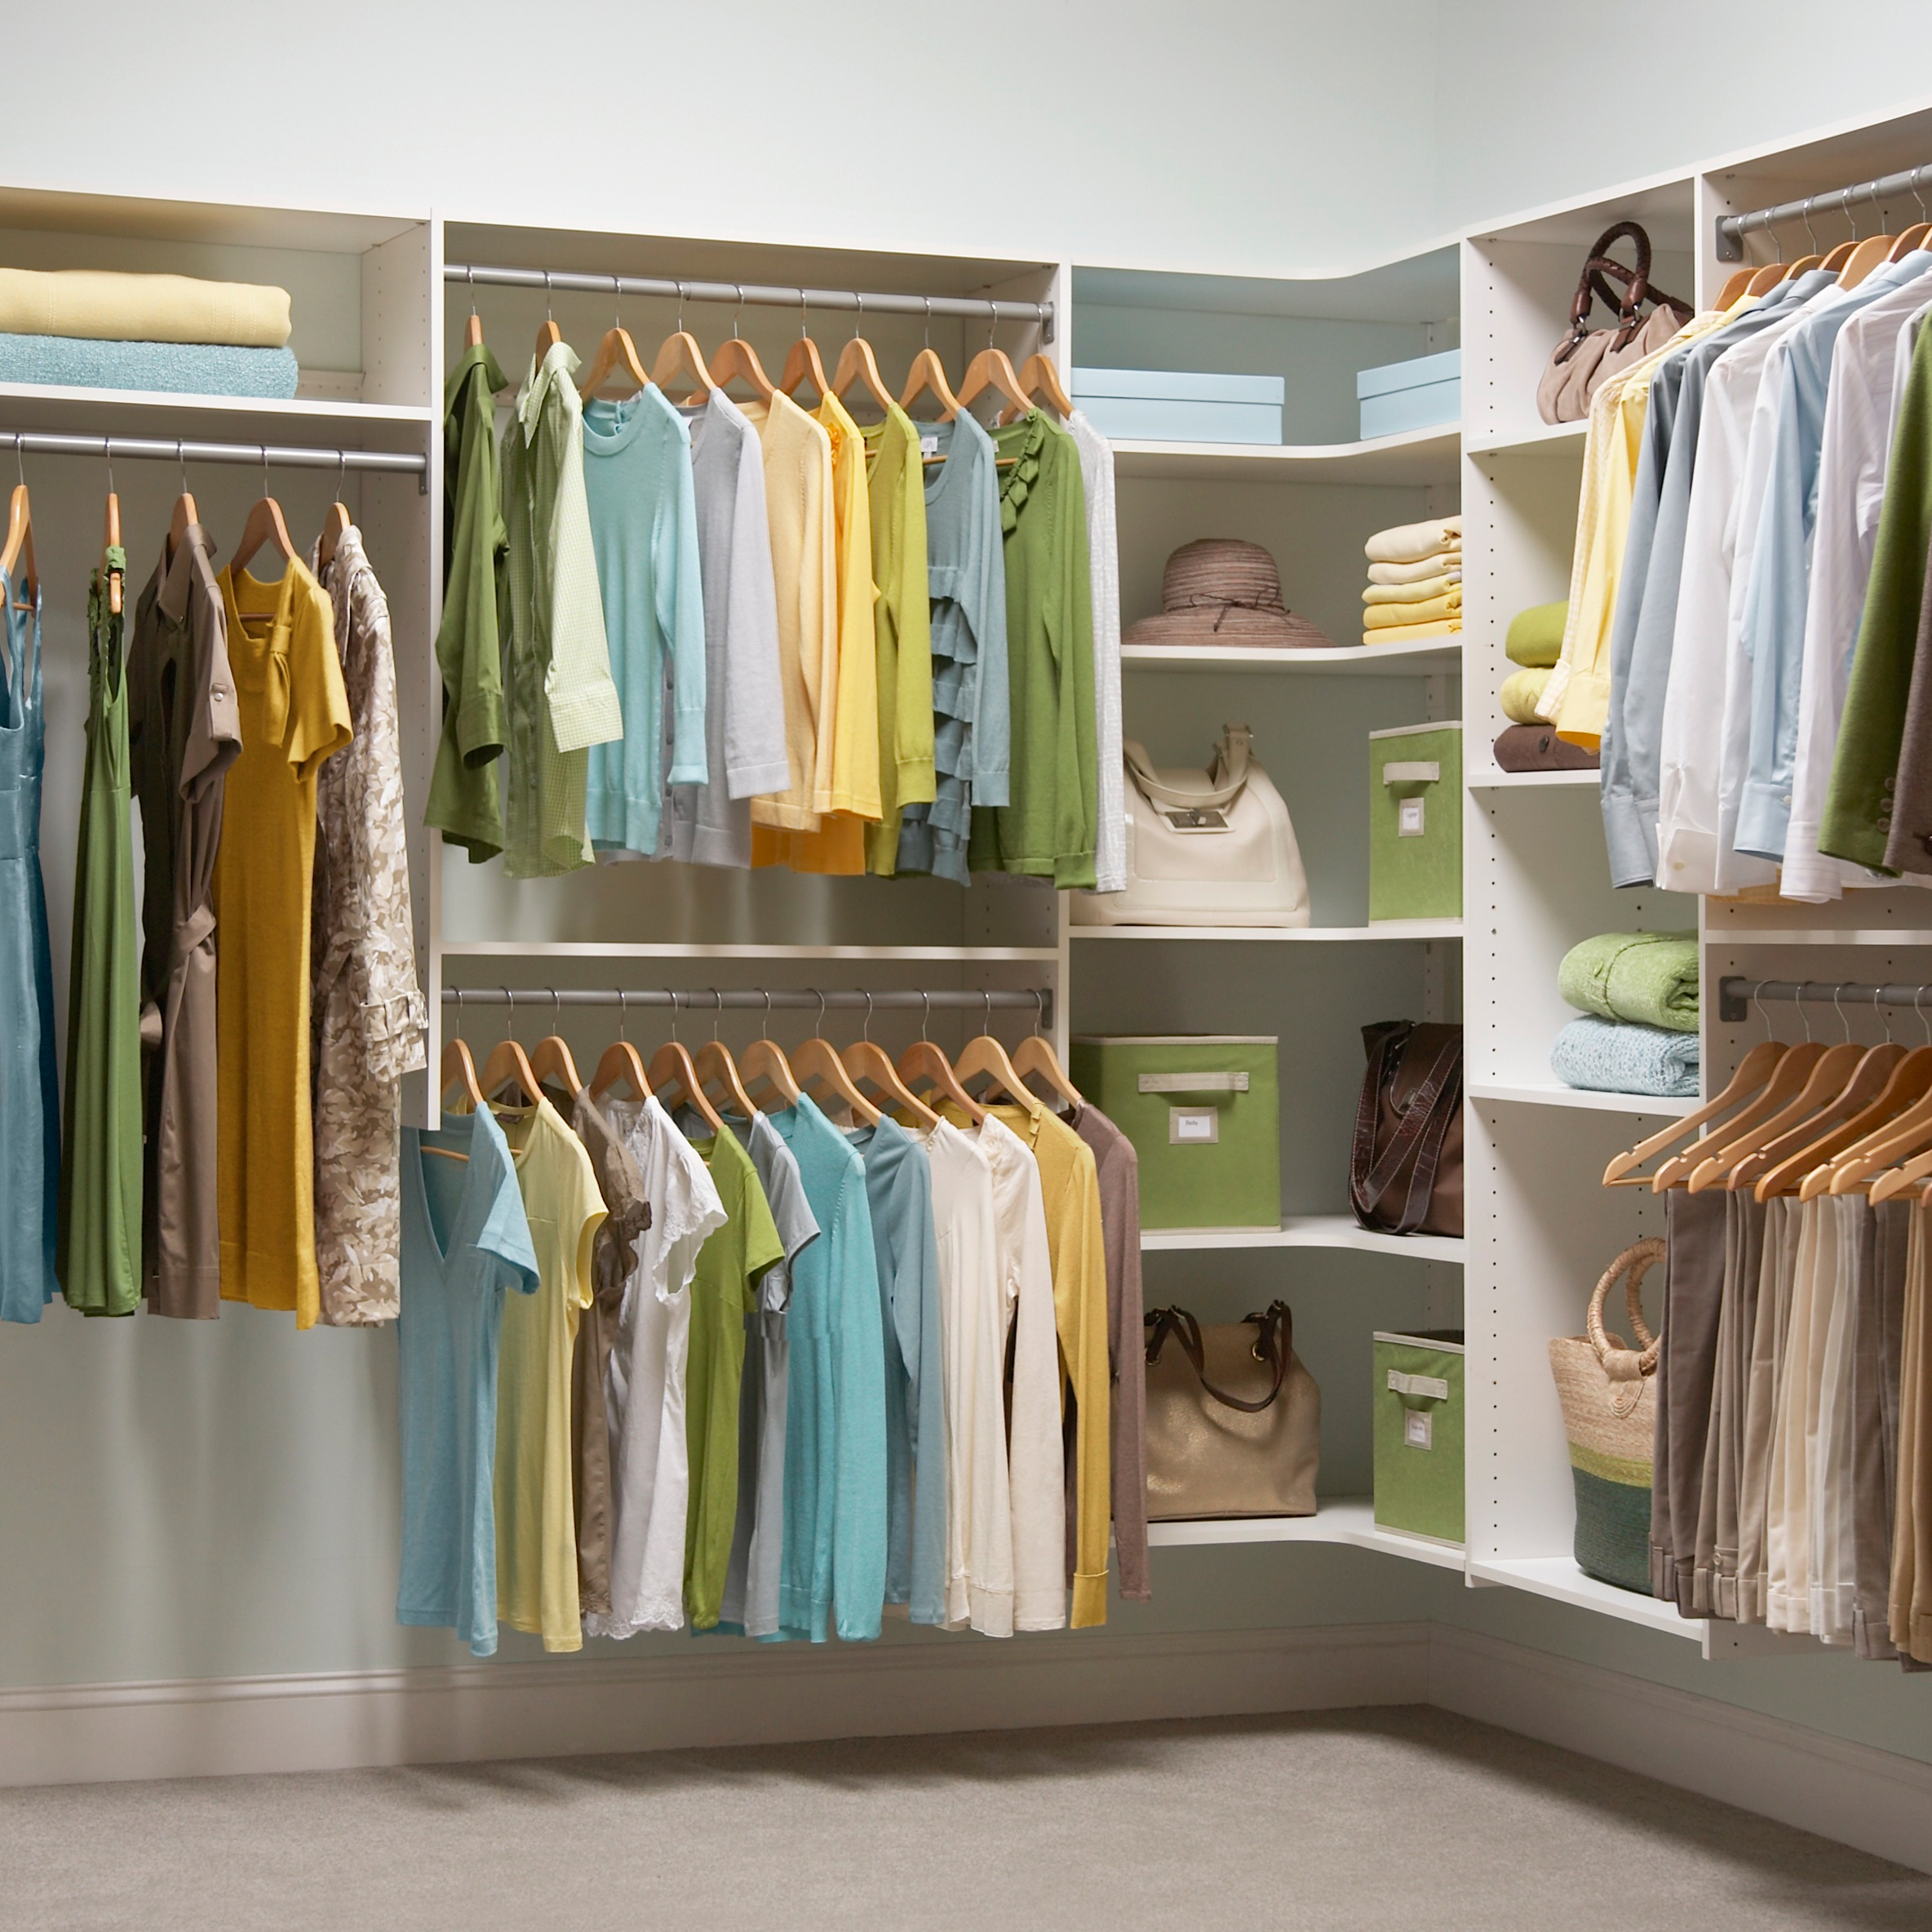 Home Depot Design Ideas: Closet Organization Made Simple By Martha Stewart Living